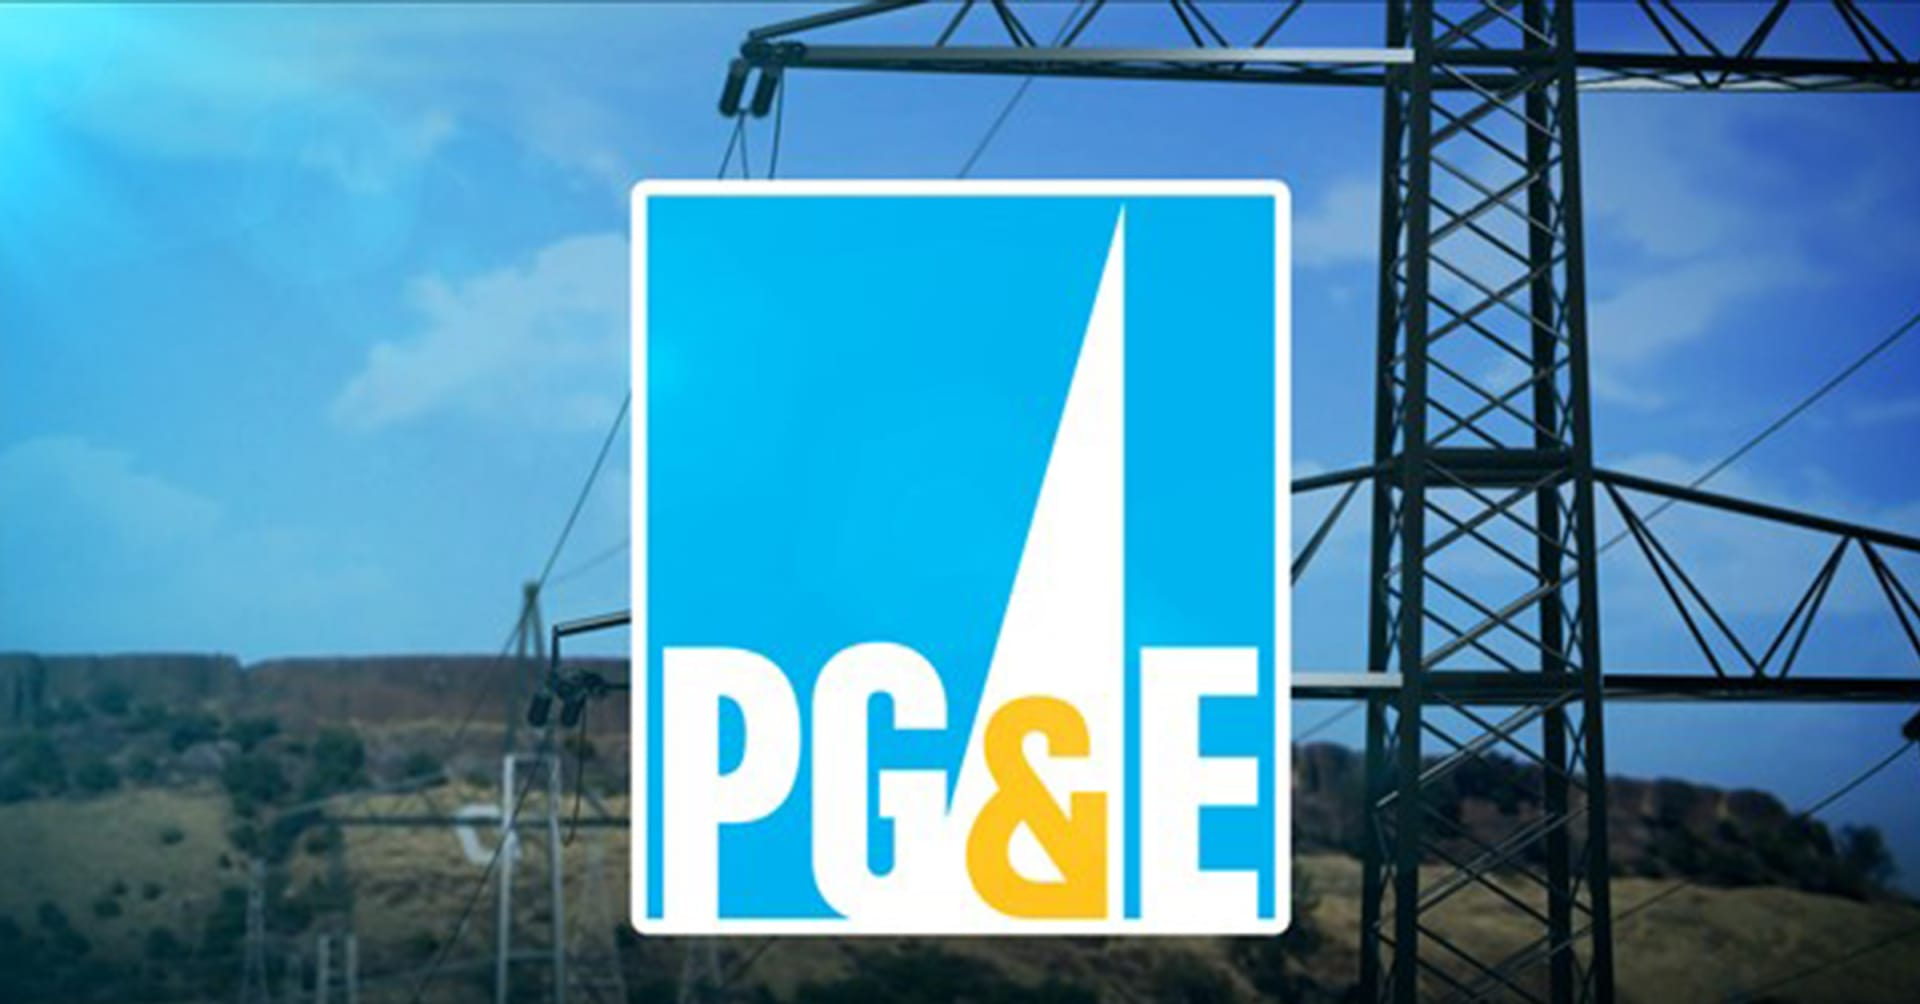 PG&E's CARE Program Helping Customers Who Have Been Financially Impacted by COVID-19